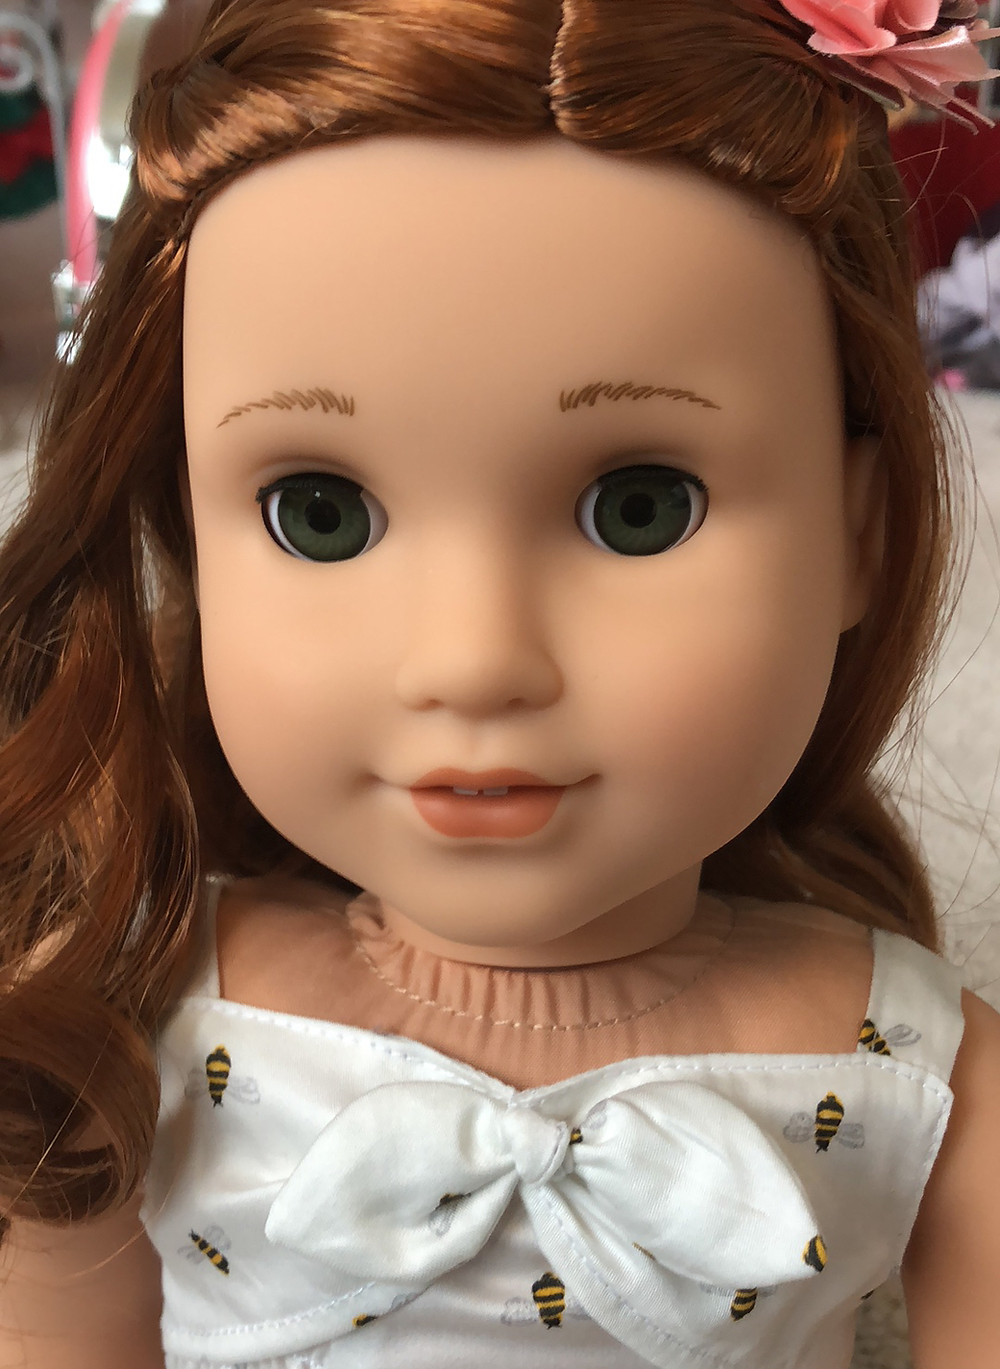 American Girl Doll, GOTY 2019, Girl of the Year 2019, Blaire Wilson, American Girl Blaire, American Girl Doll Blaire, American Girl Blaire WilsonAmerican Girl Doll, GOTY 2019, Girl of the Year 2019, Blaire Wilson, American Girl Blaire, American Girl Doll Blaire, American Girl Blaire WilsonAmerican Girl Doll, GOTY 2019, Girl of the Year 2019, Blaire Wilson, American Girl Blaire, American Girl Doll Blaire, American Girl Blaire WilsonAmerican Girl Doll, GOTY 2019, Girl of the Year 2019, Blaire Wilson, American Girl Blaire, American Girl Doll Blaire, American Girl Blaire WilsonAmerican Girl Doll, GOTY 2019, Girl of the Year 2019, Blaire Wilson, American Girl Blaire, American Girl Doll Blaire, American Girl Blaire WilsonAmerican Girl Doll, GOTY 2019, Girl of the Year 2019, Blaire Wilson, American Girl Blaire, American Girl Doll Blaire, American Girl Blaire WilsonAmerican Girl Doll, GOTY 2019, Girl of the Year 2019, Blaire Wilson, American Girl Blaire, American Girl Doll Blaire, American Girl Blaire WilsonAmerican Girl Doll, GOTY 2019, Girl of the Year 2019, Blaire Wilson, American Girl Blaire, American Girl Doll Blaire, American Girl Blaire WilsonAmerican Girl Doll, GOTY 2019, Girl of the Year 2019, Blaire Wilson, American Girl Blaire, American Girl Doll Blaire, American Girl Blaire WilsonAmerican Girl Doll, GOTY 2019, Girl of the Year 2019, Blaire Wilson, American Girl Blaire, American Girl Doll Blaire, American Girl Blaire WilsonAmerican Girl Doll, GOTY 2019, Girl of the Year 2019, Blaire Wilson, American Girl Blaire, American Girl Doll Blaire, American Girl Blaire WilsonAmerican Girl Doll, GOTY 2019, Girl of the Year 2019, Blaire Wilson, American Girl Blaire, American Girl Doll Blaire, American Girl Blaire WilsonAmerican Girl Doll, GOTY 2019, Girl of the Year 2019, Blaire Wilson, American Girl Blaire, American Girl Doll Blaire, American Girl Blaire WilsonAmerican Girl Doll, GOTY 2019, Girl of the Year 2019, Blaire Wilson, American Girl Blaire, American Girl Doll Blaire, American Girl Blaire WilsonAmerican Girl Doll, GOTY 2019, Girl of the Year 2019, Blaire Wilson, American Girl Blaire, American Girl Doll Blaire, American Girl Blaire WilsonAmerican Girl Doll, GOTY 2019, Girl of the Year 2019, Blaire Wilson, American Girl Blaire, American Girl Doll Blaire, American Girl Blaire WilsonAmerican Girl Doll, GOTY 2019, Girl of the Year 2019, Blaire Wilson, American Girl Blaire, American Girl Doll Blaire, American Girl Blaire WilsonAmerican Girl Doll, GOTY 2019, Girl of the Year 2019, Blaire Wilson, American Girl Blaire, American Girl Doll Blaire, American Girl Blaire Wilson